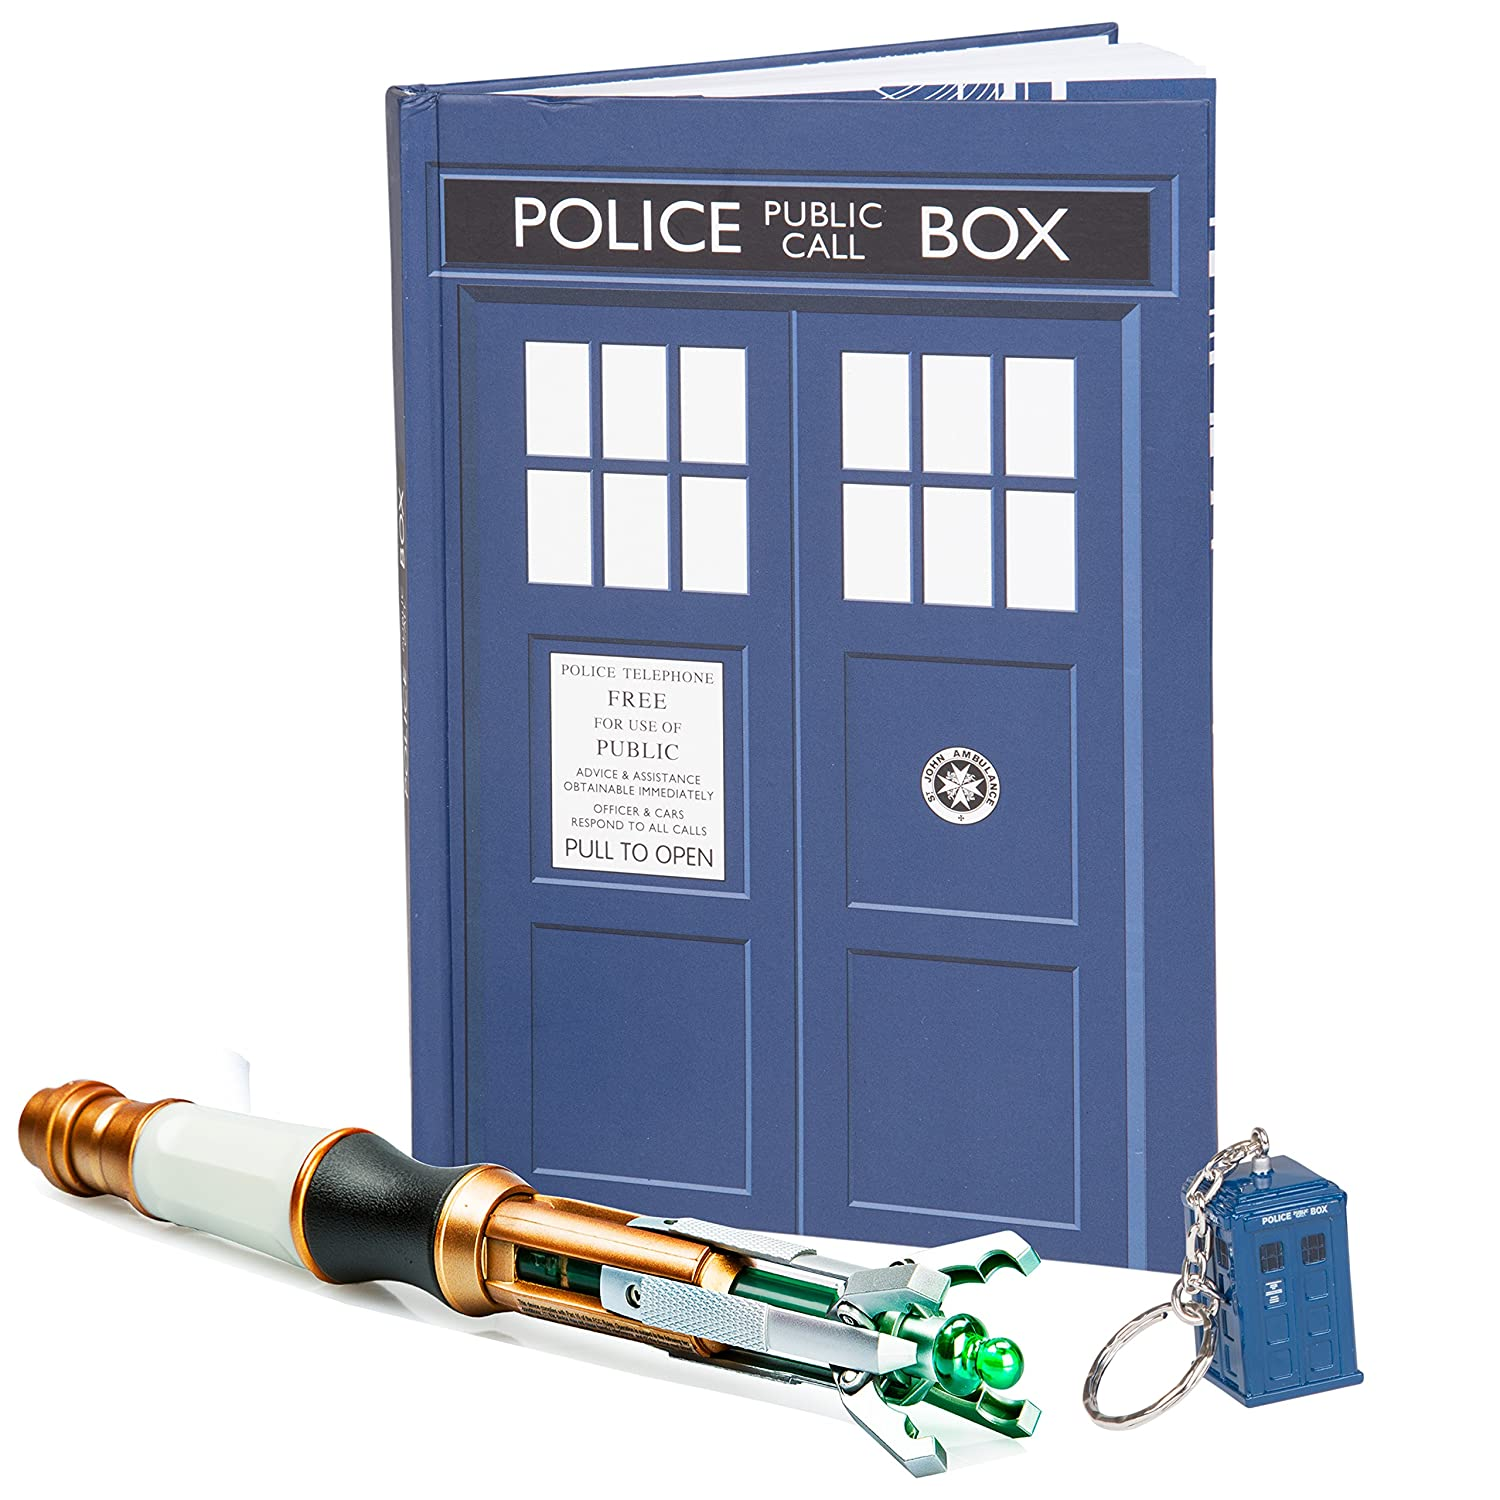 Doctor Who Gift Set - Sonic Screwdriver, TARDIS Key Chain and Journal